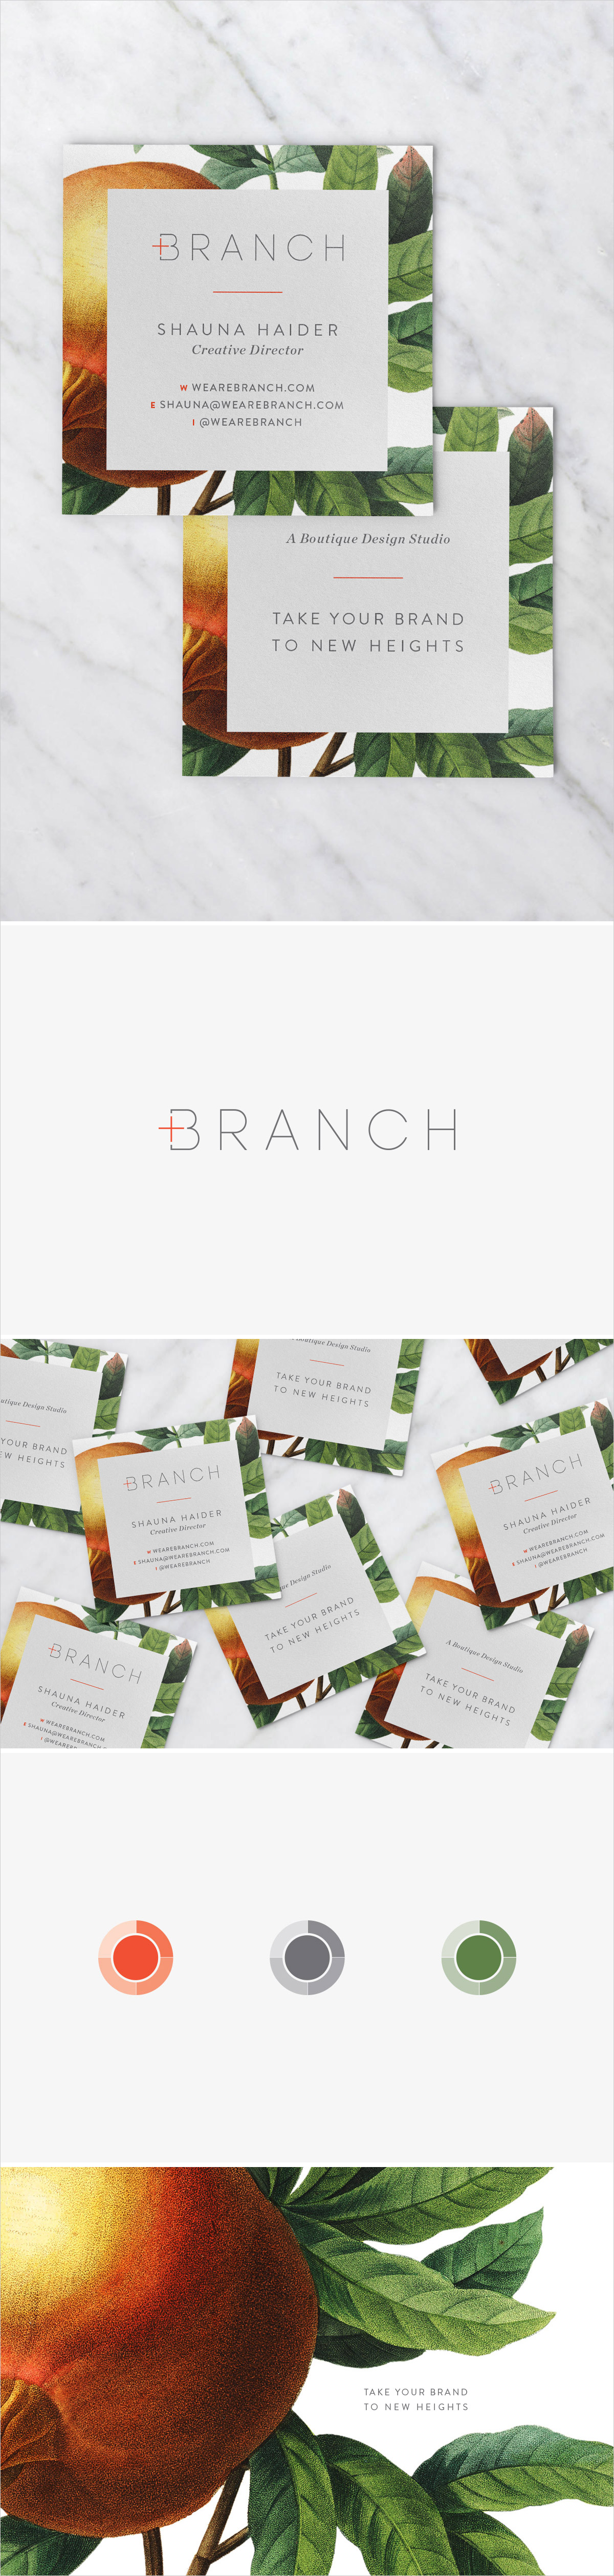 Branch | Brand Refresh